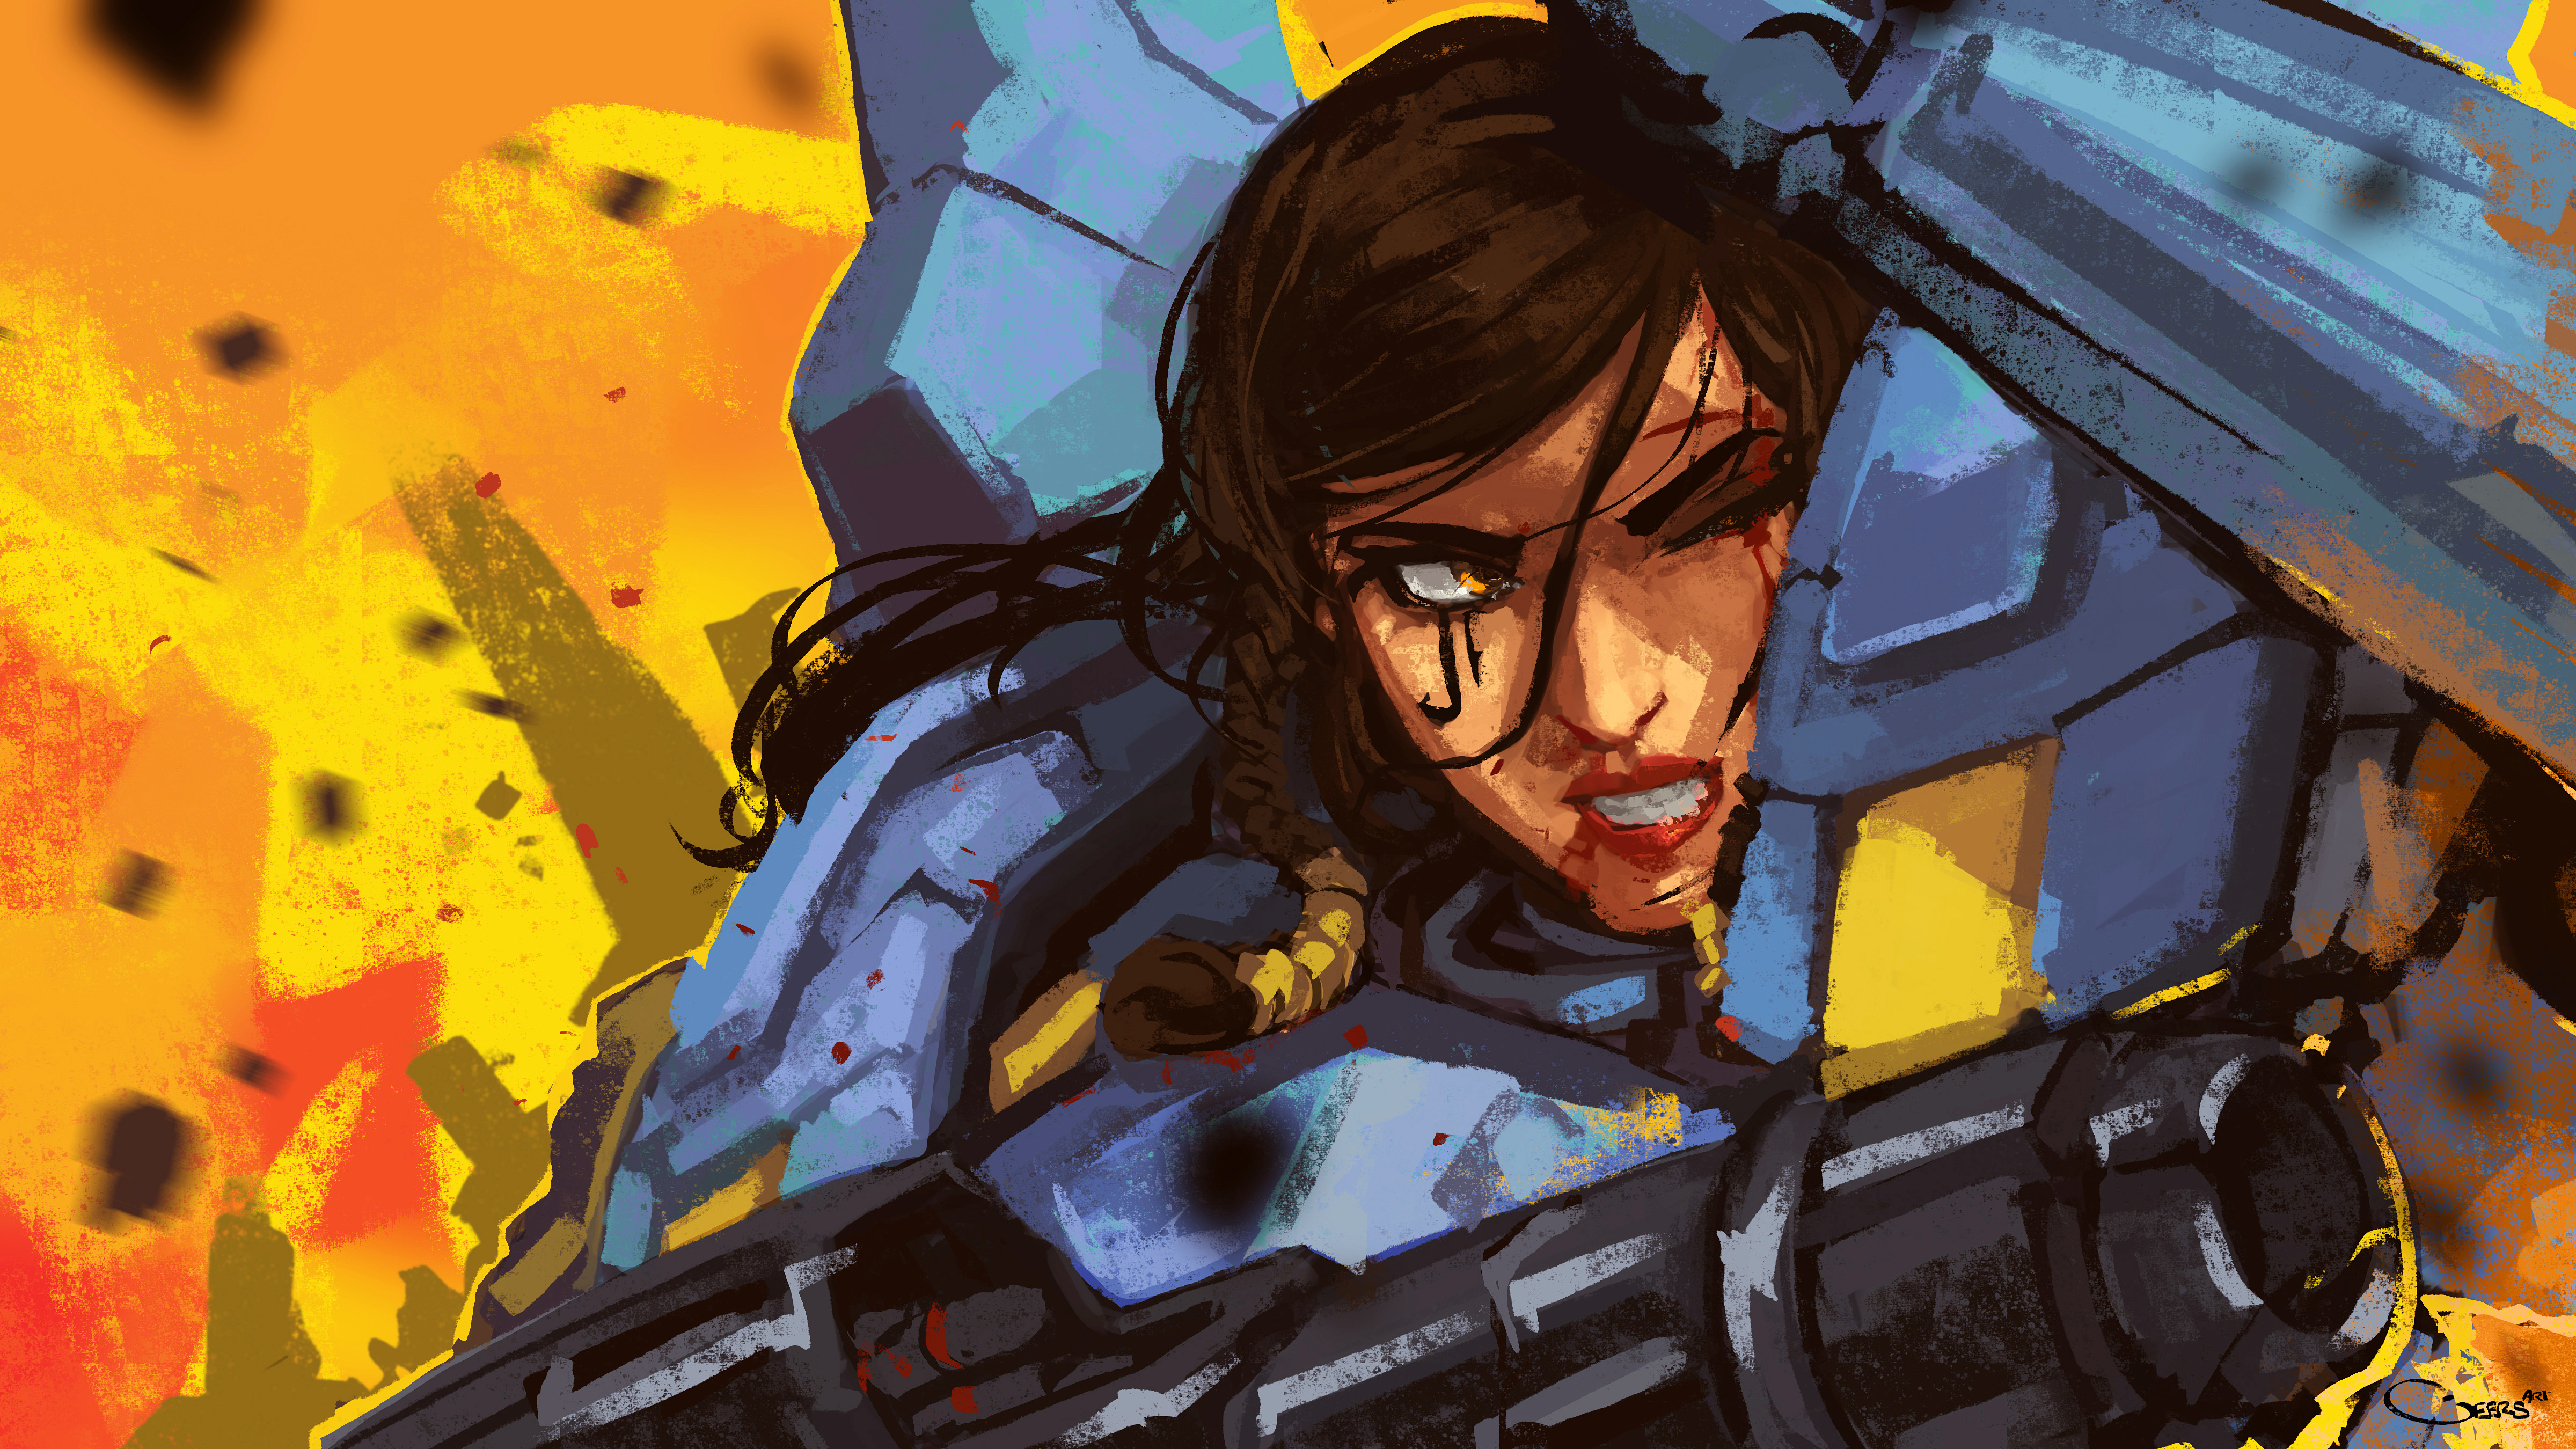 Pharah Overwatch 5k Hd Games 4k Wallpapers Images Backgrounds